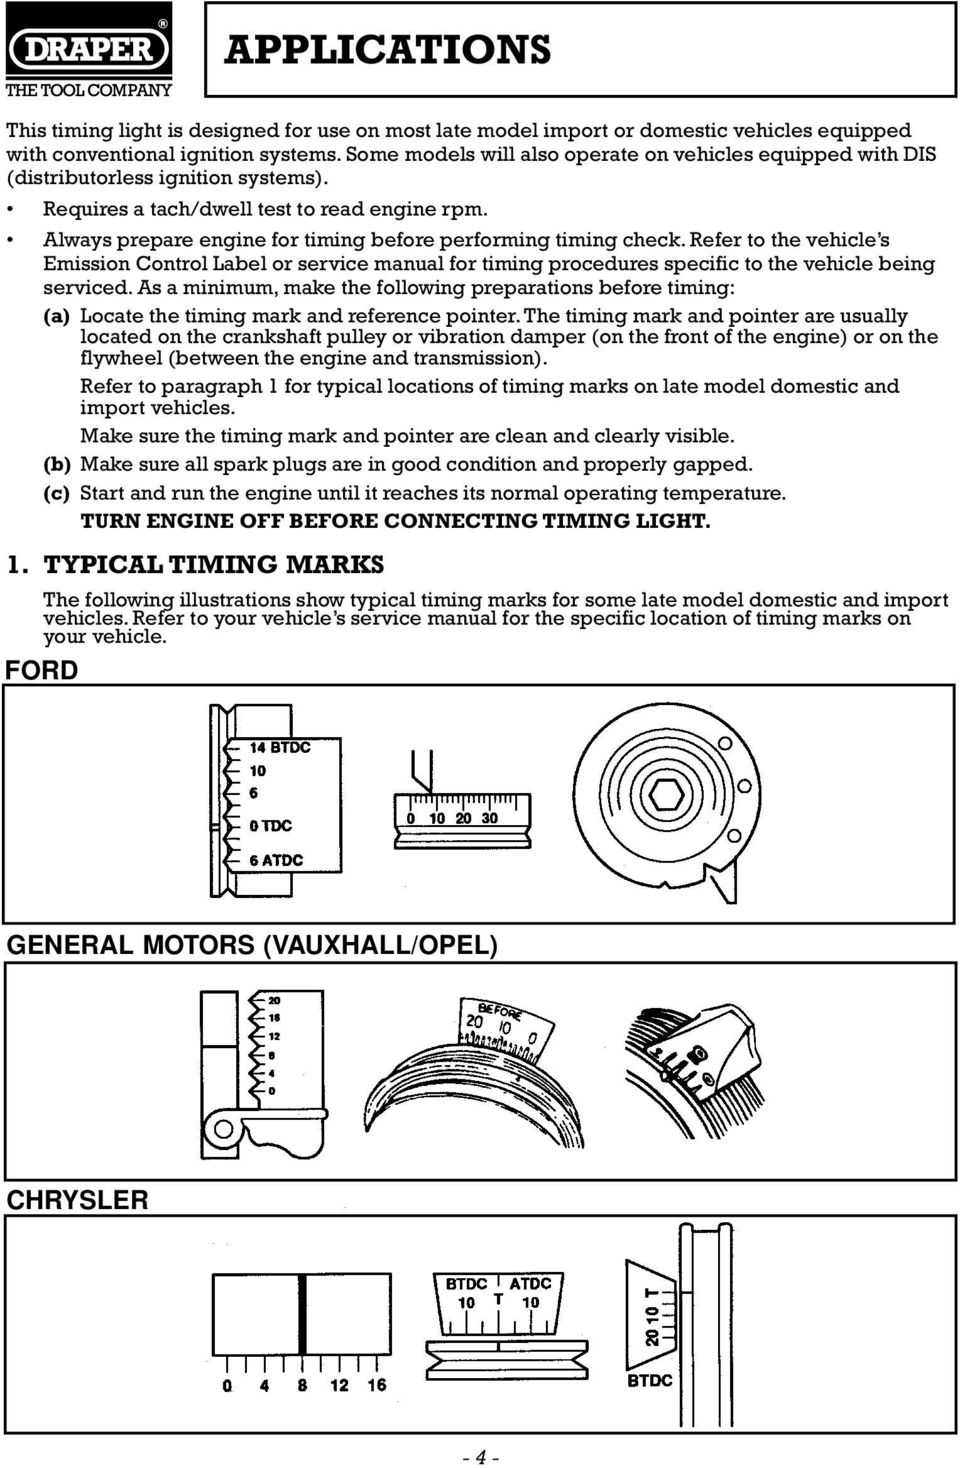 medium resolution of always prepare engine for timing before performing timing check refer to the vehicle s emission